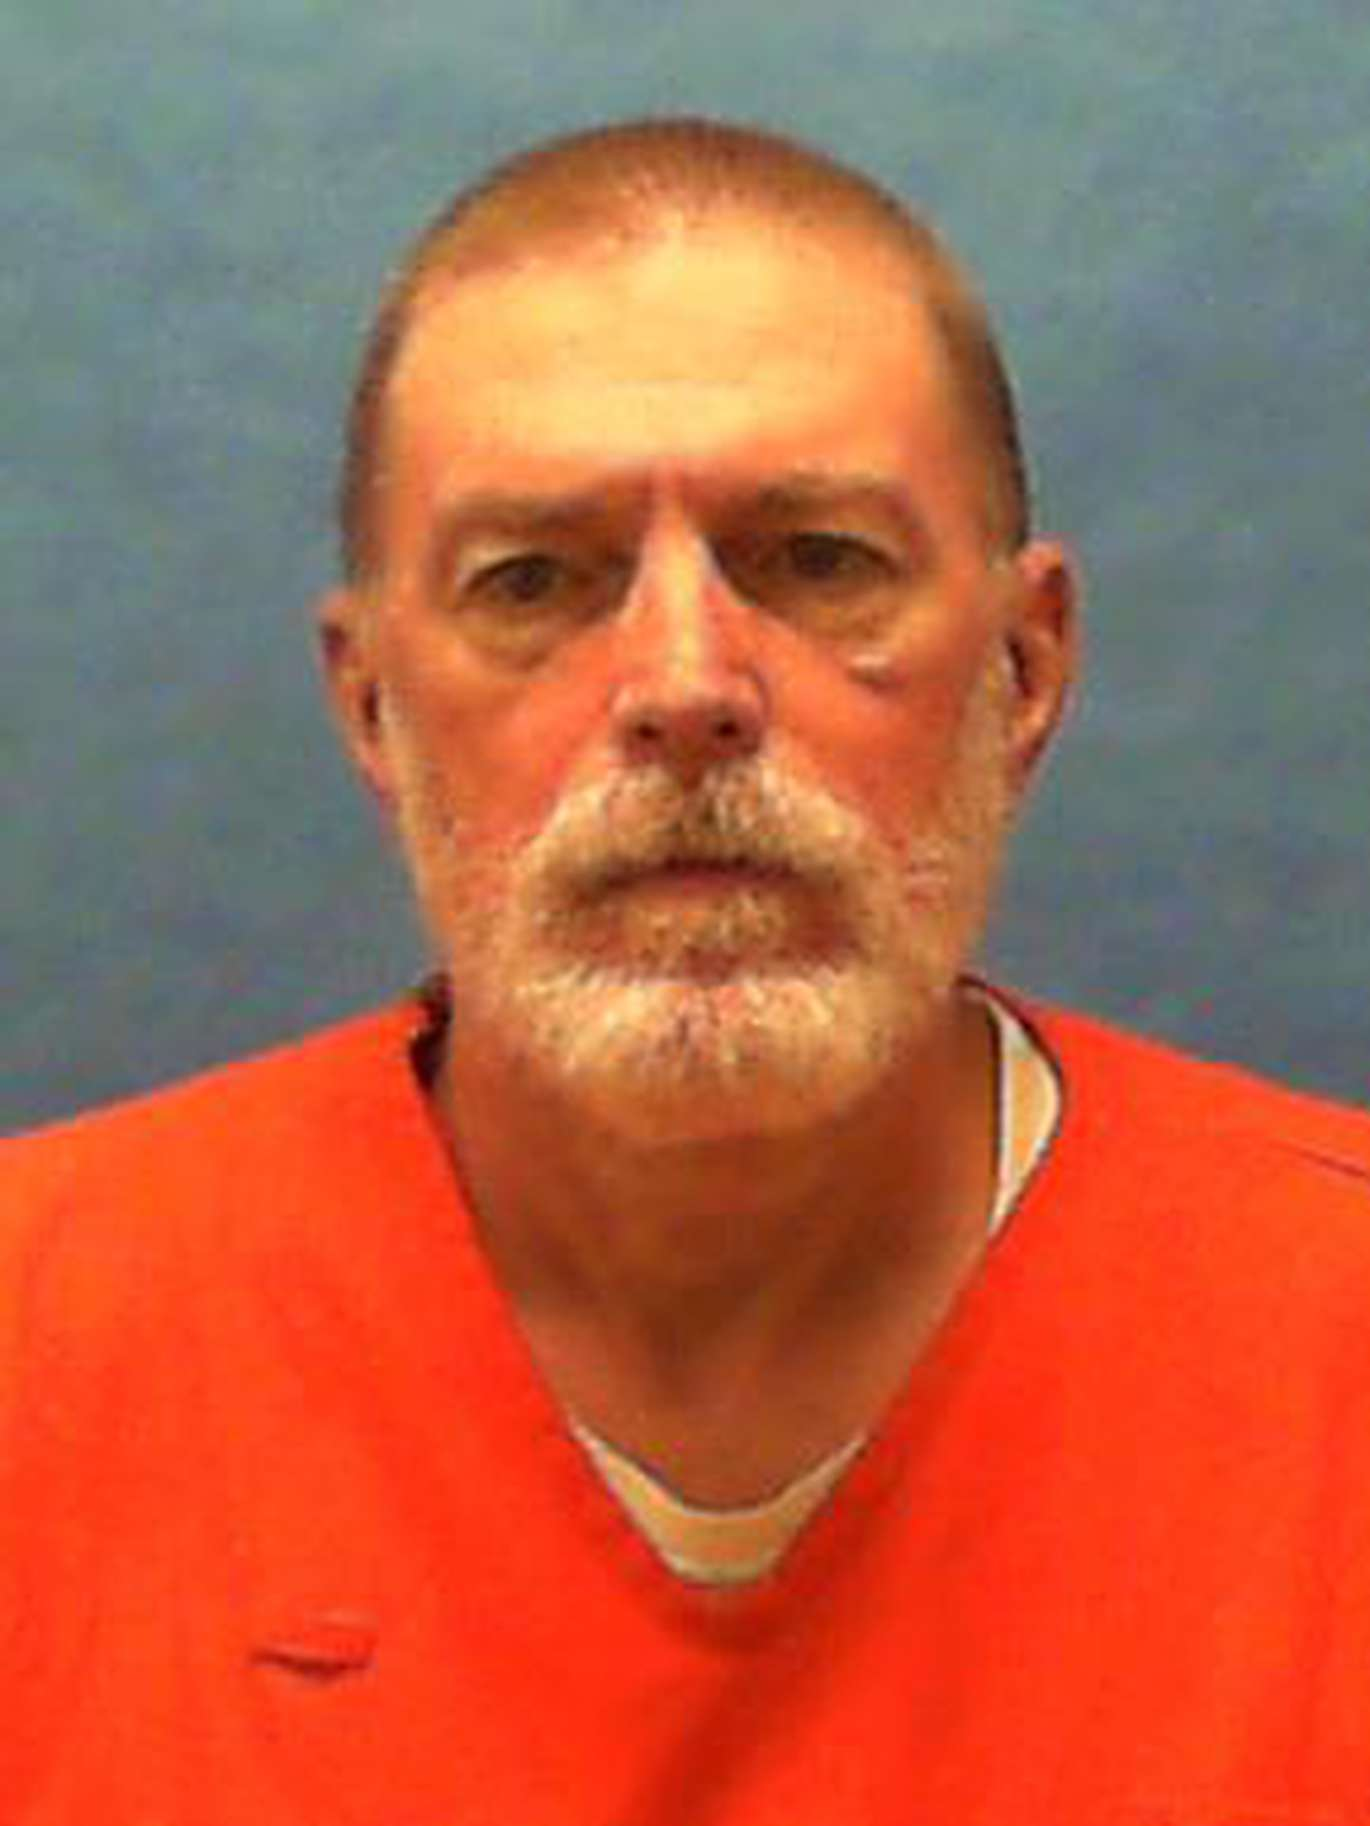 ID PhotoIn June of 1990, Jeffrey Atwater was sentenced to death for the killing of Ken Smith the summer prior. Smith, 64, told Atwater he'd stop lending him money. Atwater looked for Smith for at least three days before beating him and stabbing in more than 40 times in his St. Petersburg apartment.